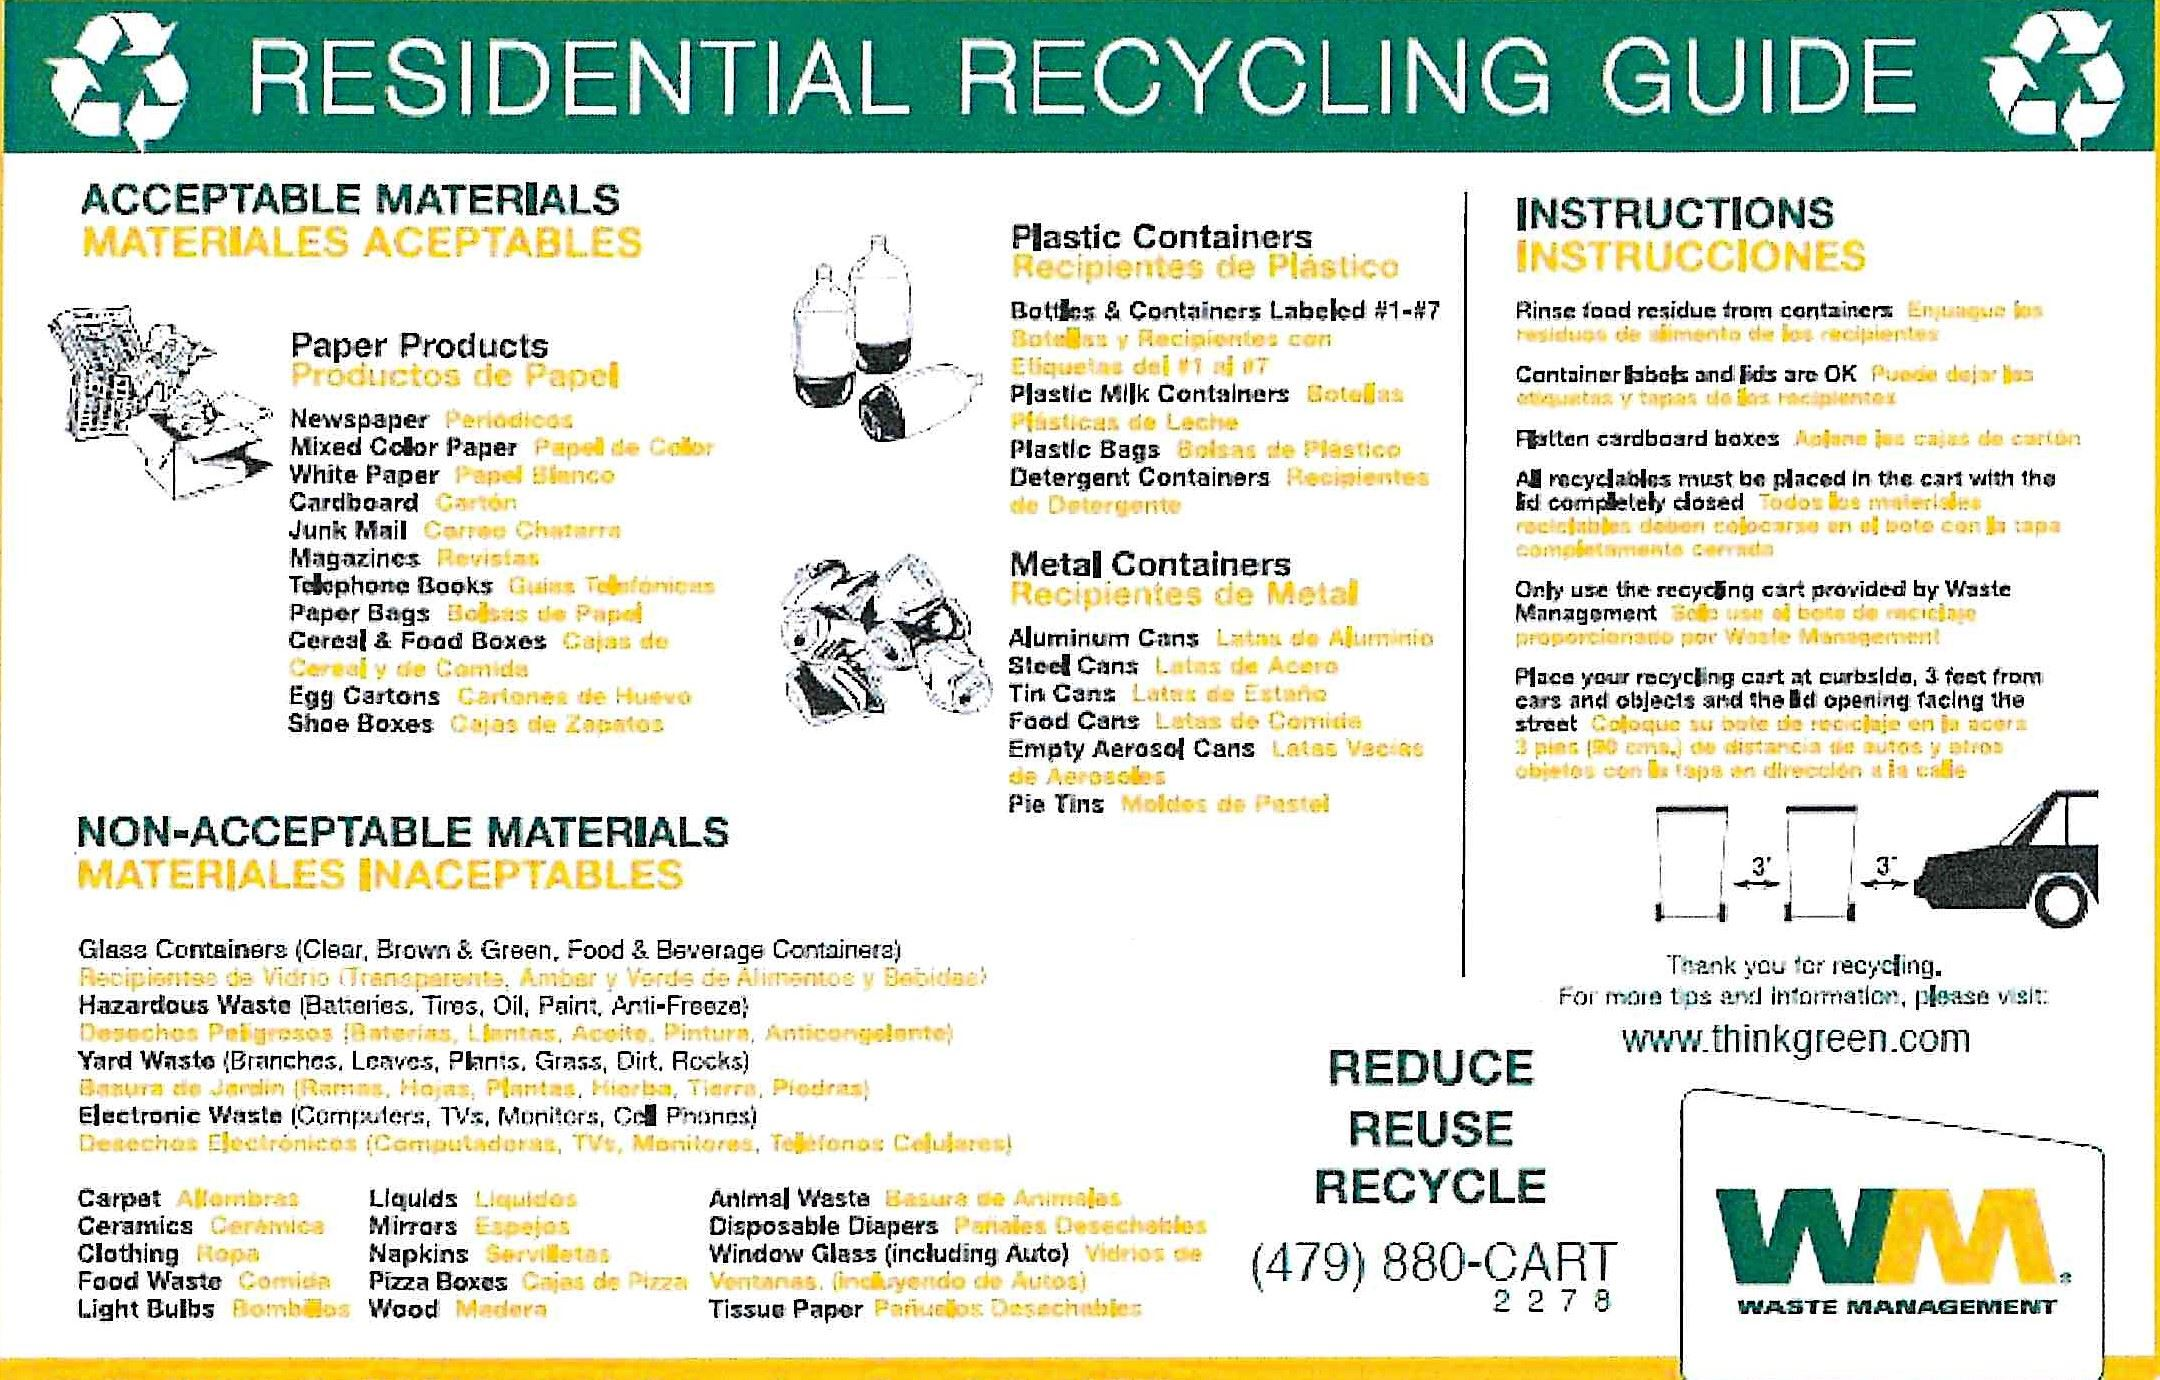 Residential Recycling Guide (2)